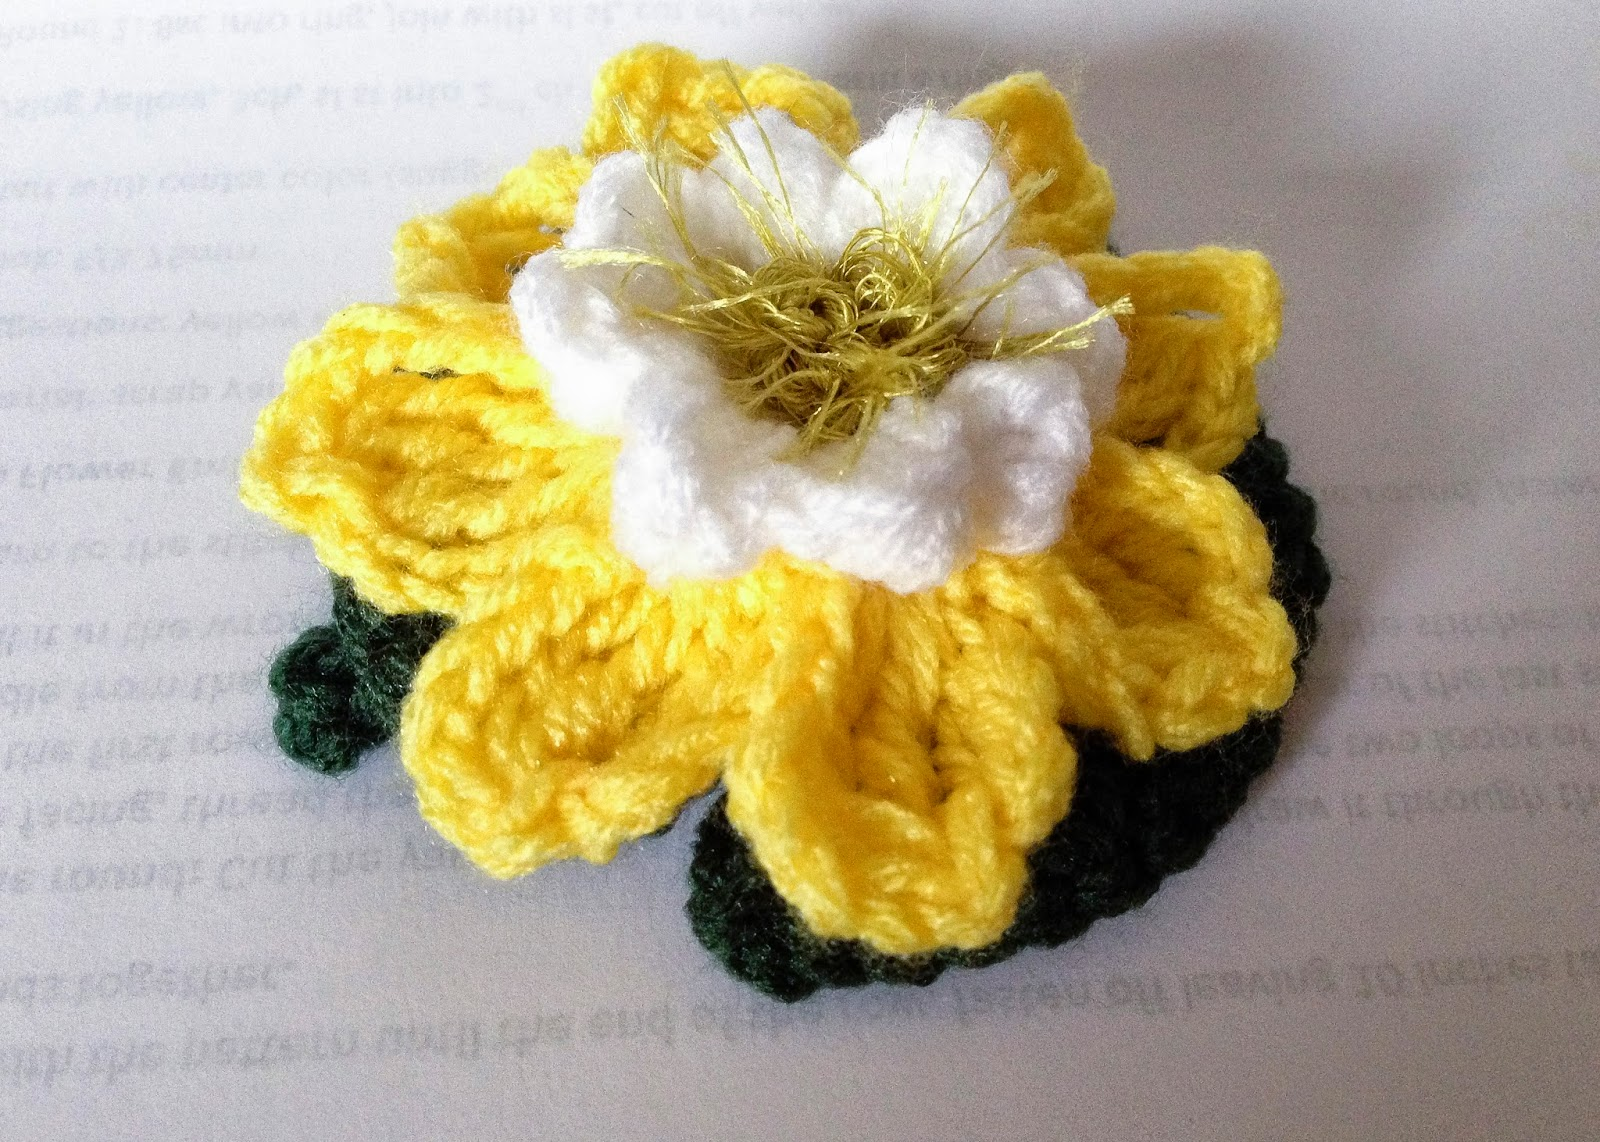 Crochet rockstar flower of the week no 2 lotus if you like what you see and made something from my free patterns please credit me by mentioning my name and my blog and provide the link to my blog izmirmasajfo Gallery